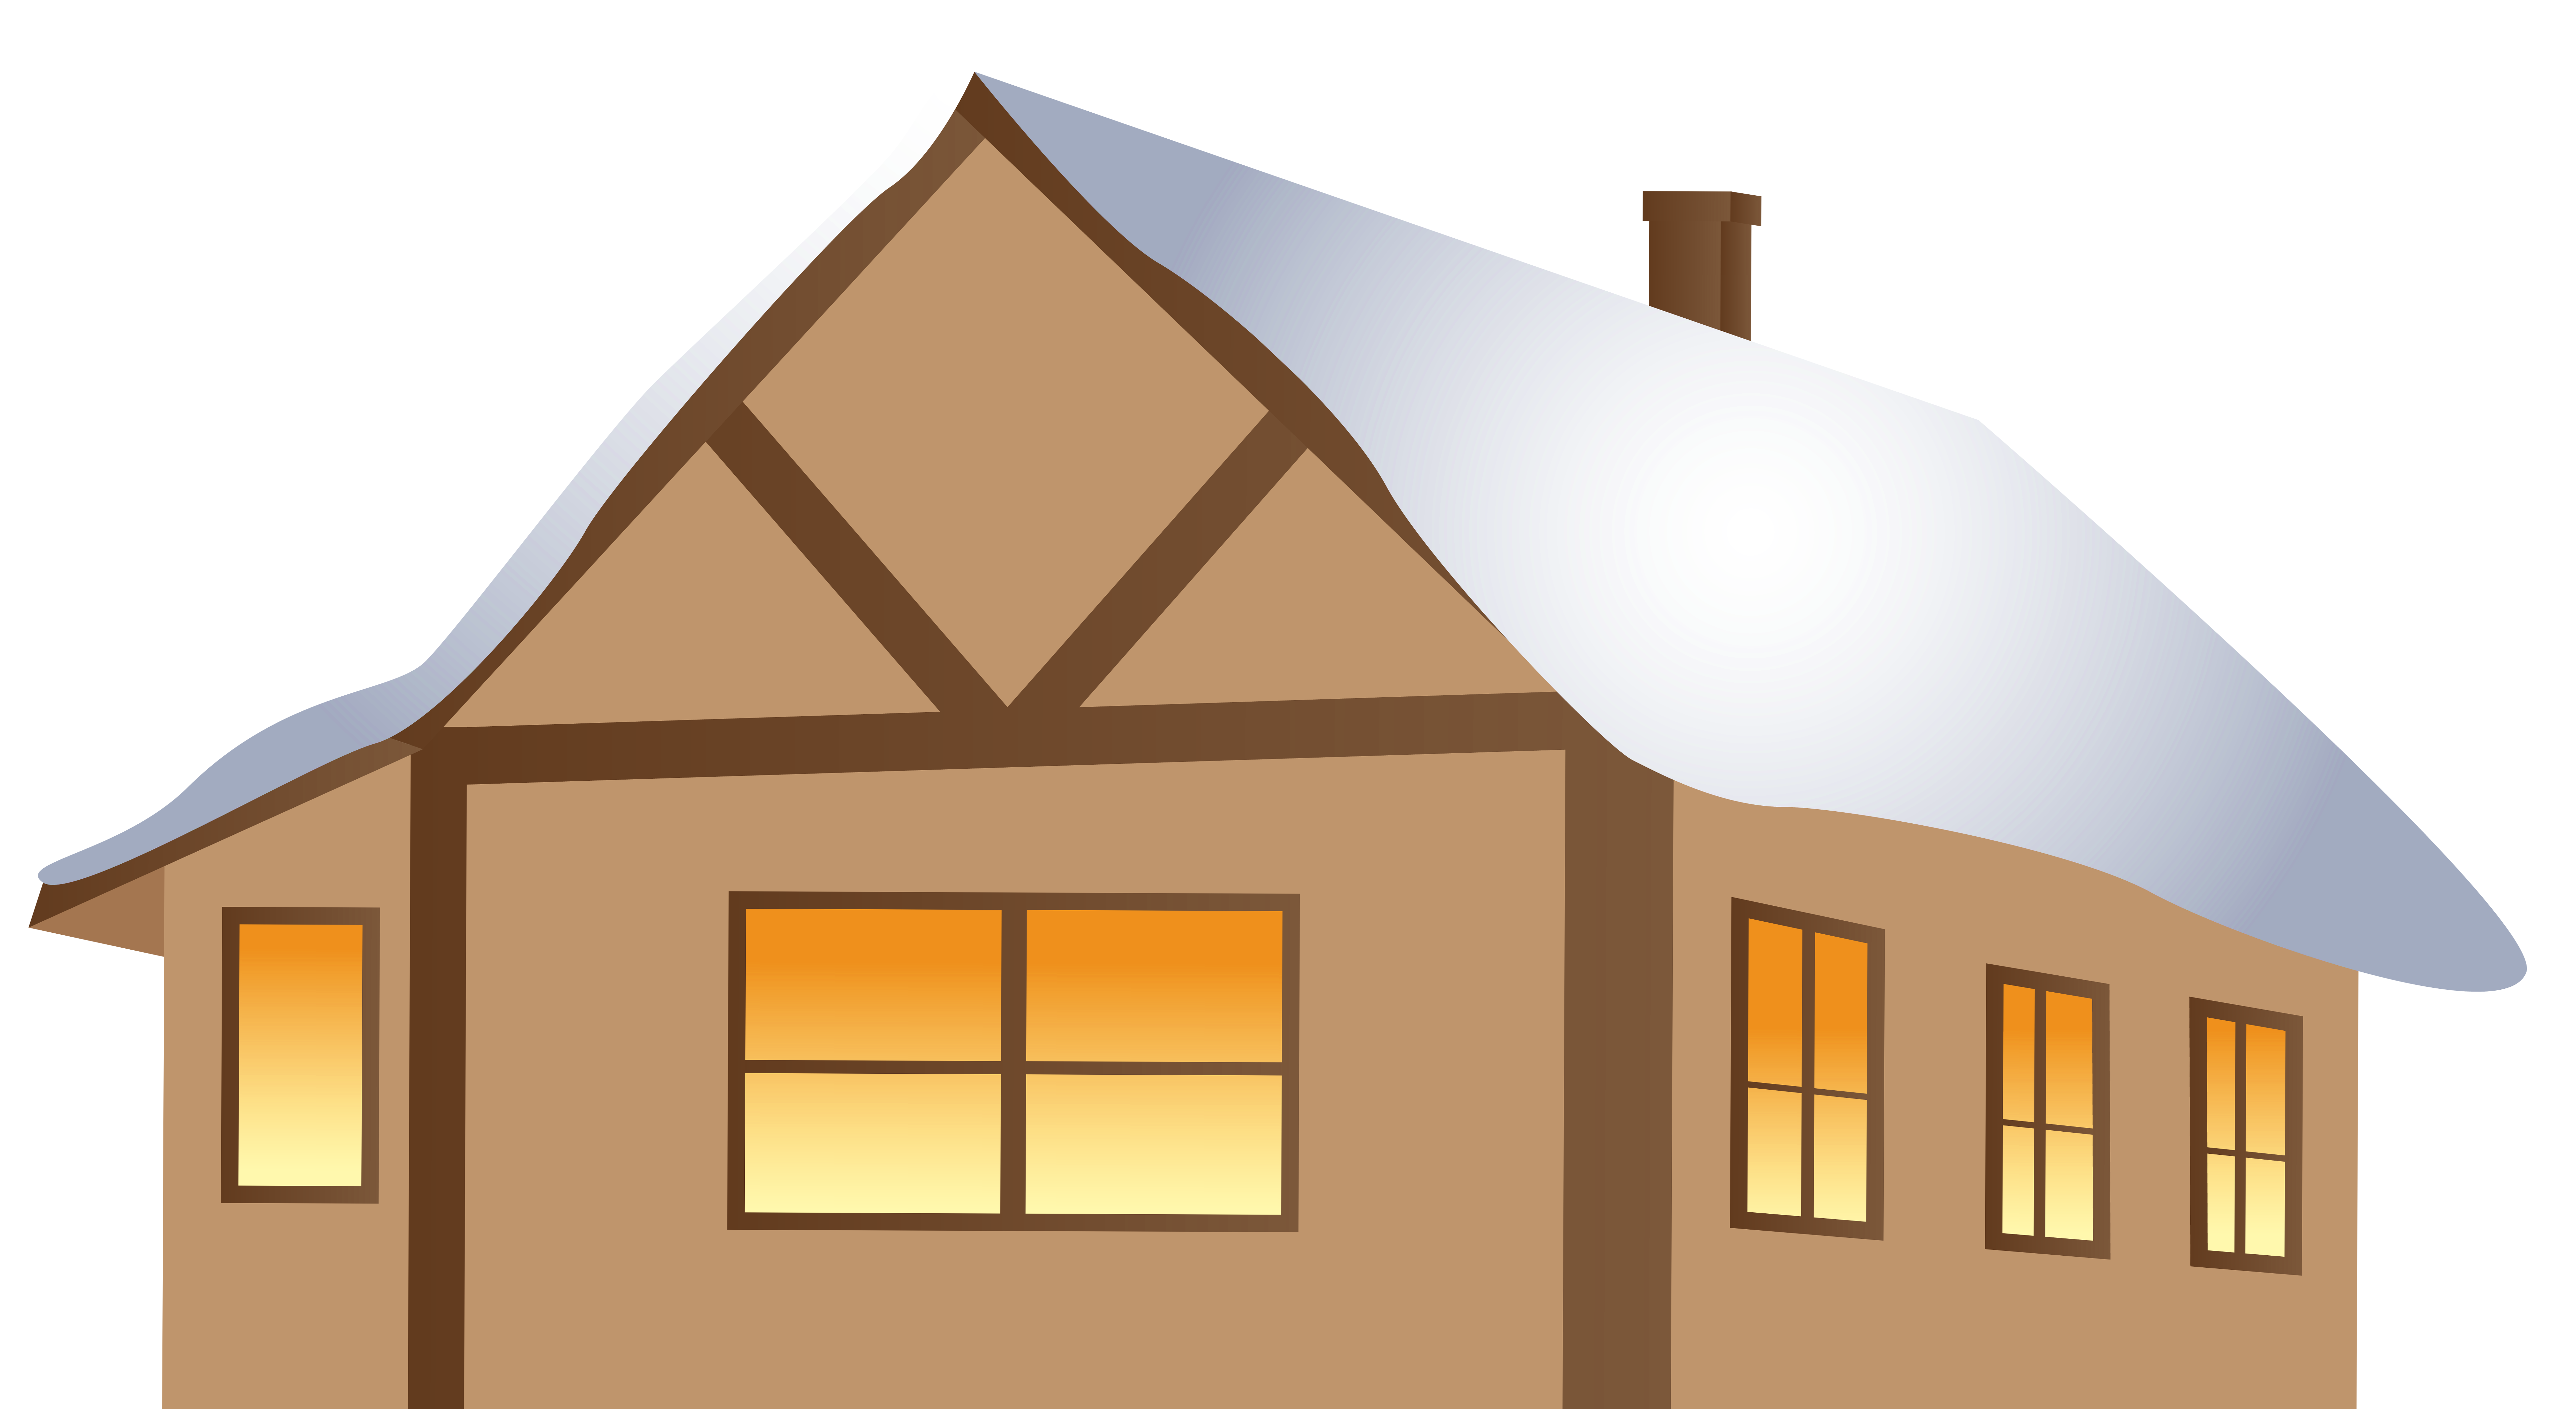 Winter clipart night. Brown house png image